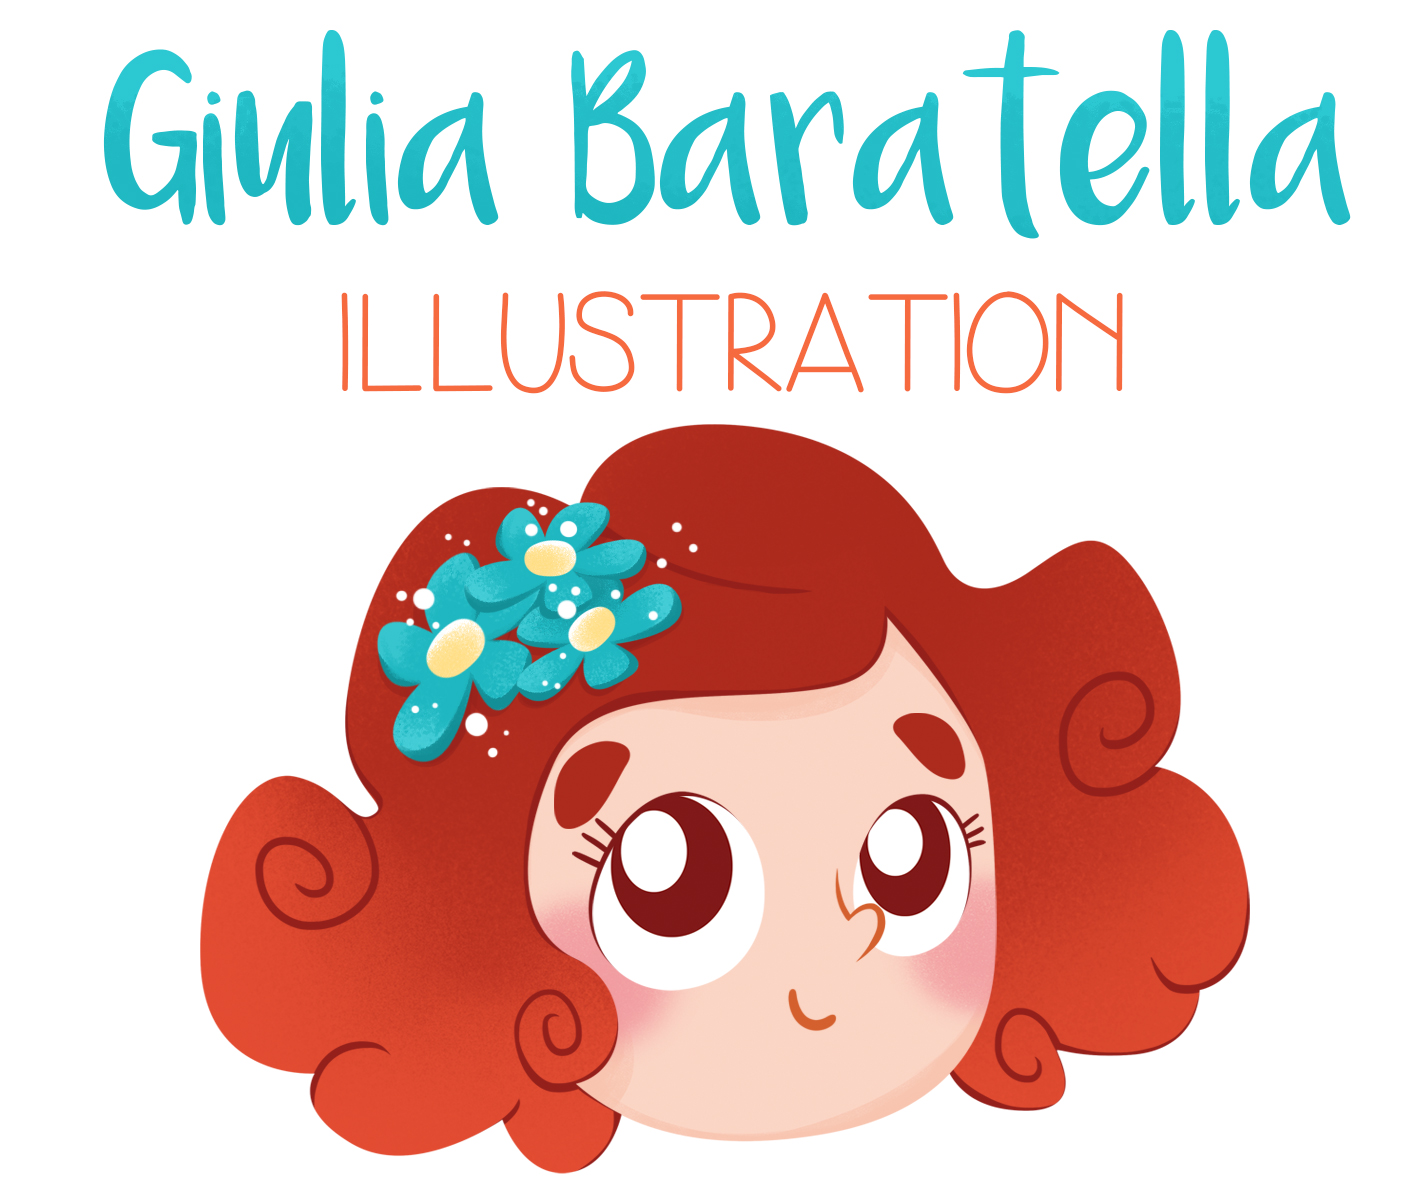 Giulia Baratella Illustration